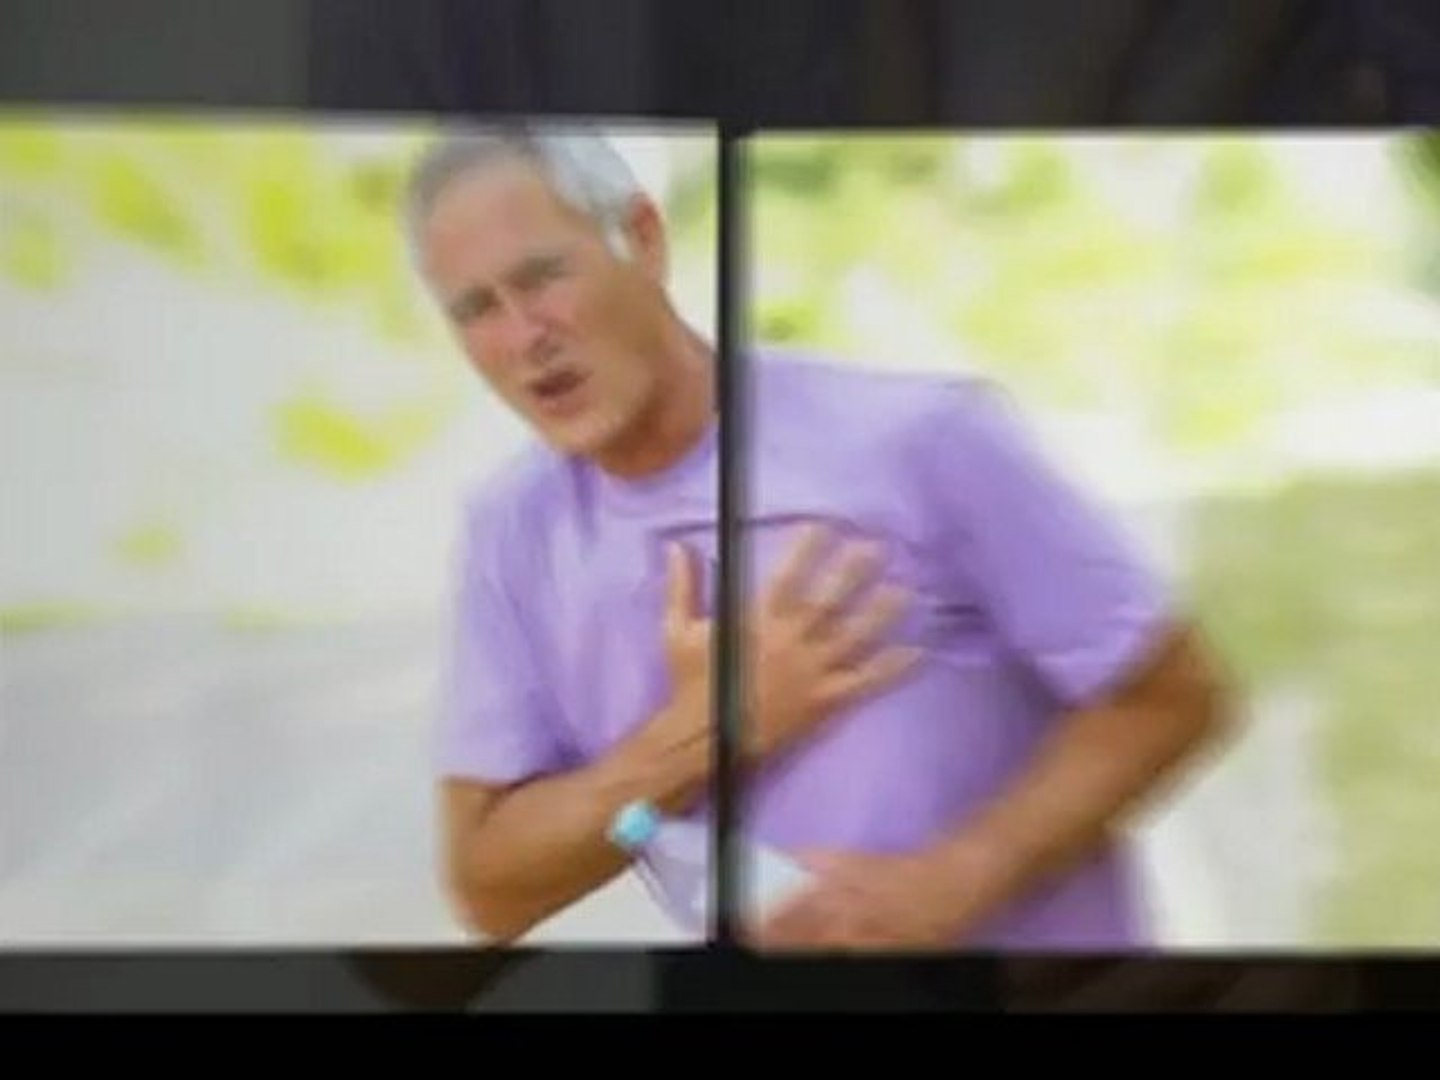 how to prevent heart attacks - how to stop heart attack - how to prevent heart disease